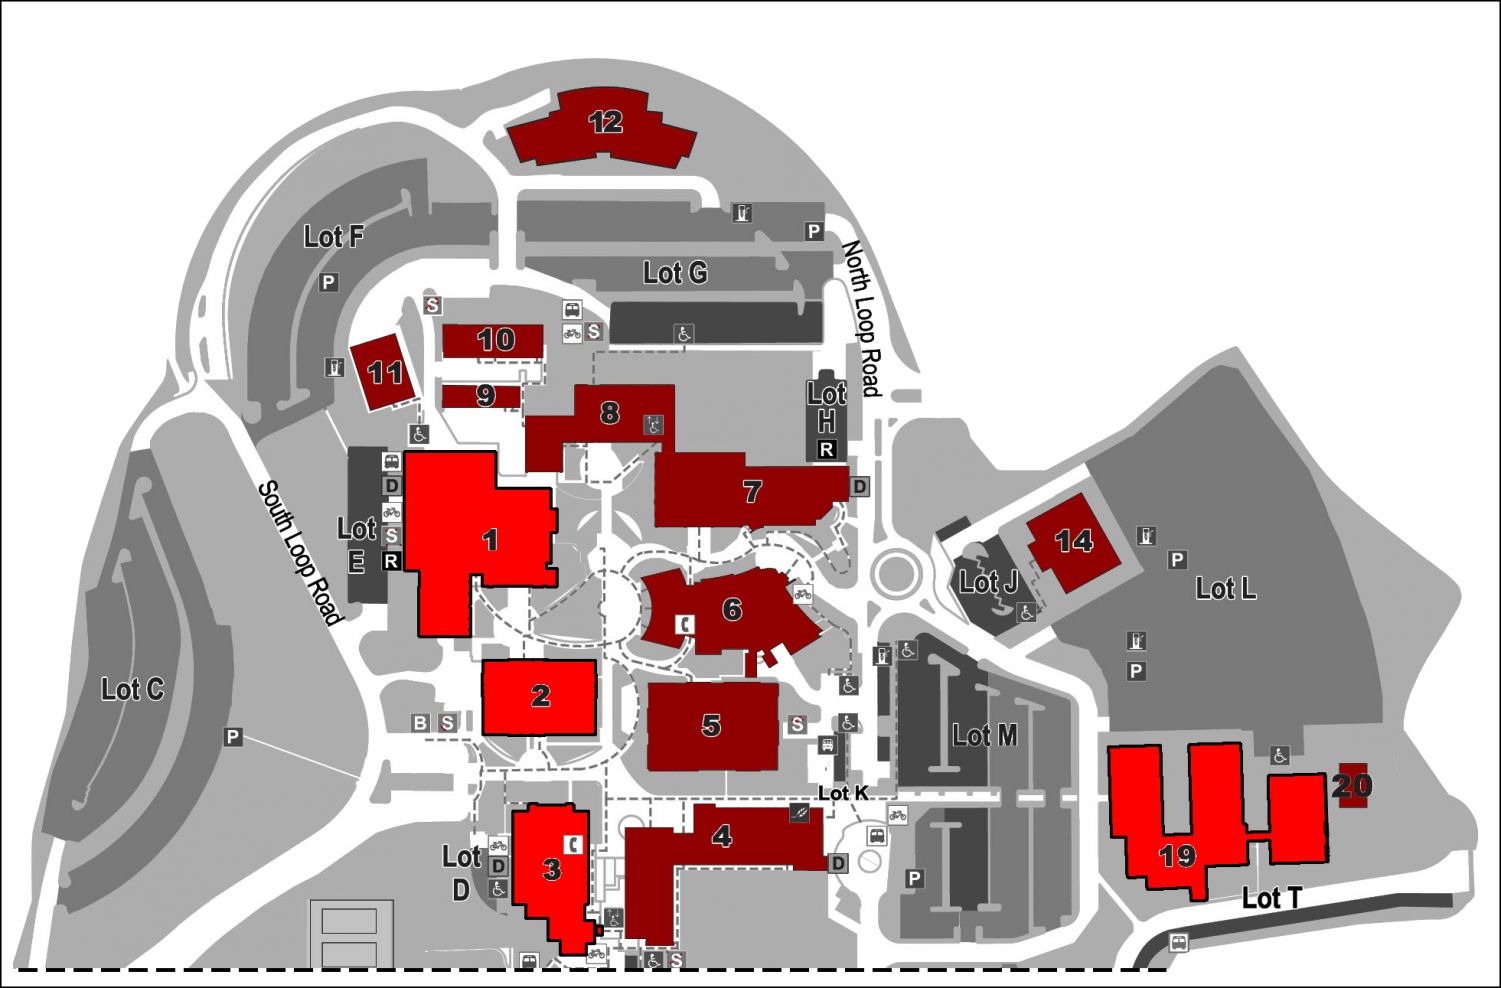 The buildings in light red are the ones in which construction is taking place.